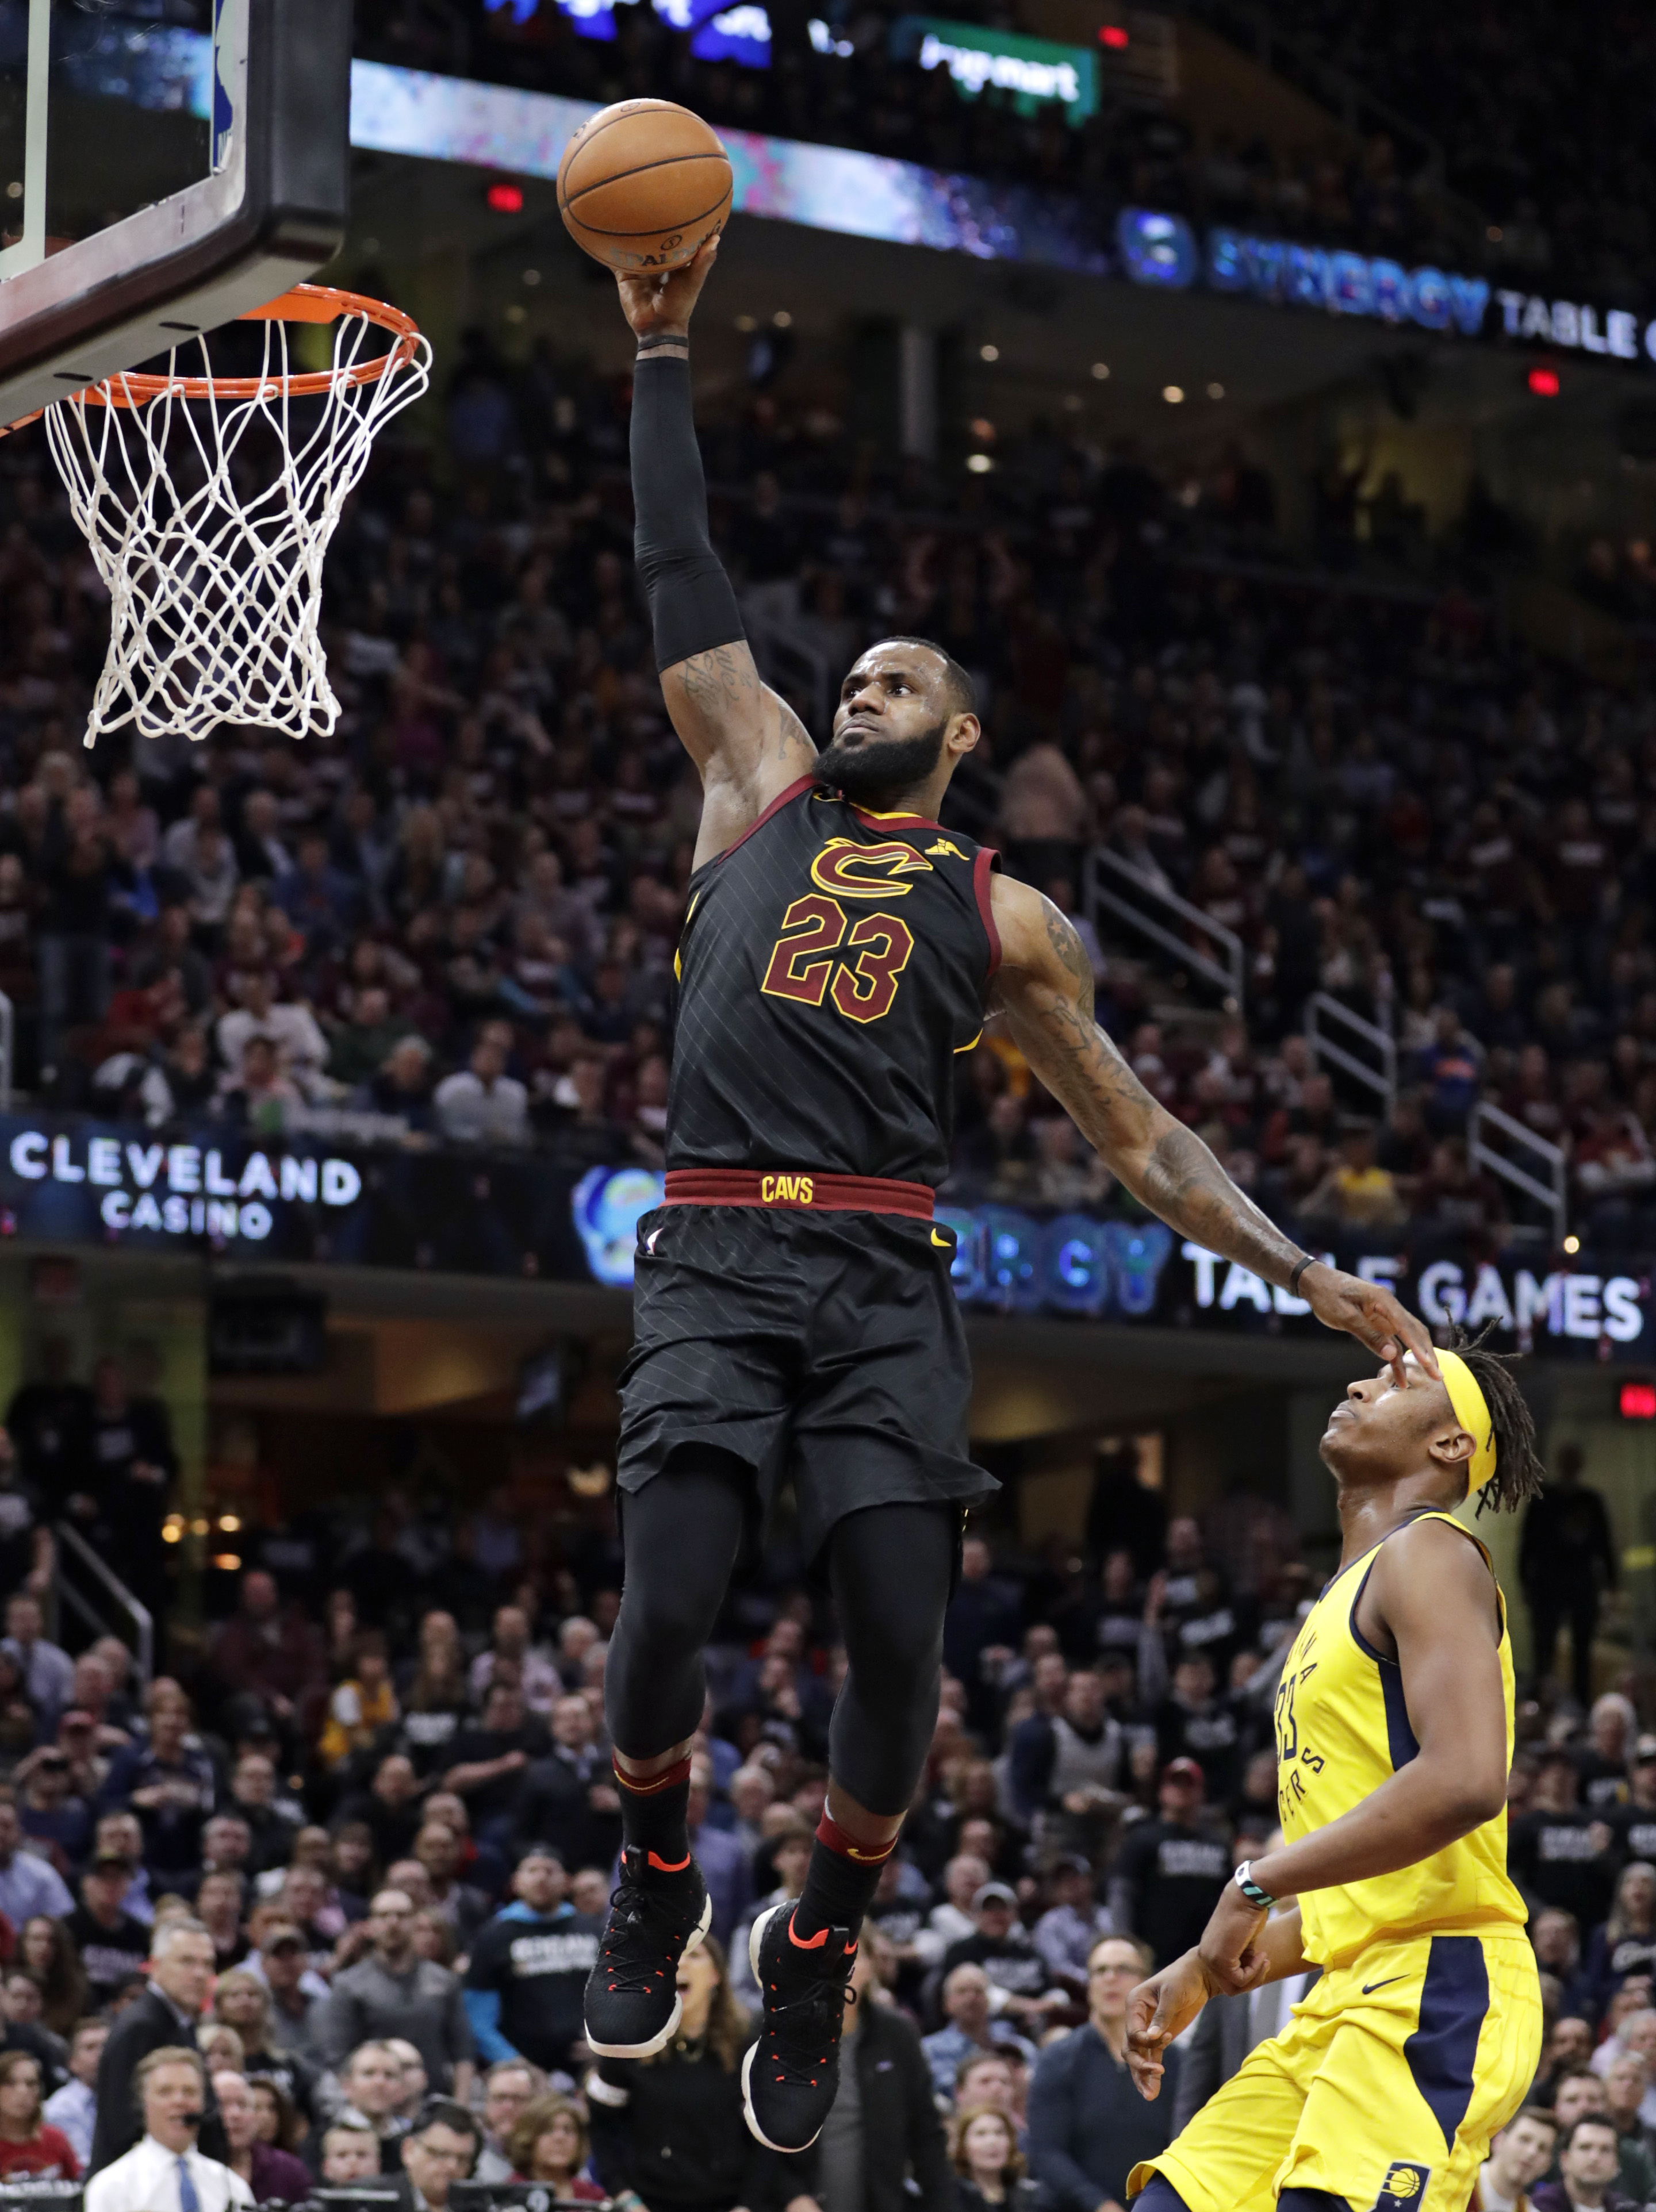 LeBron scores 46, Cavaliers hold off Pacers to even series - The Blade